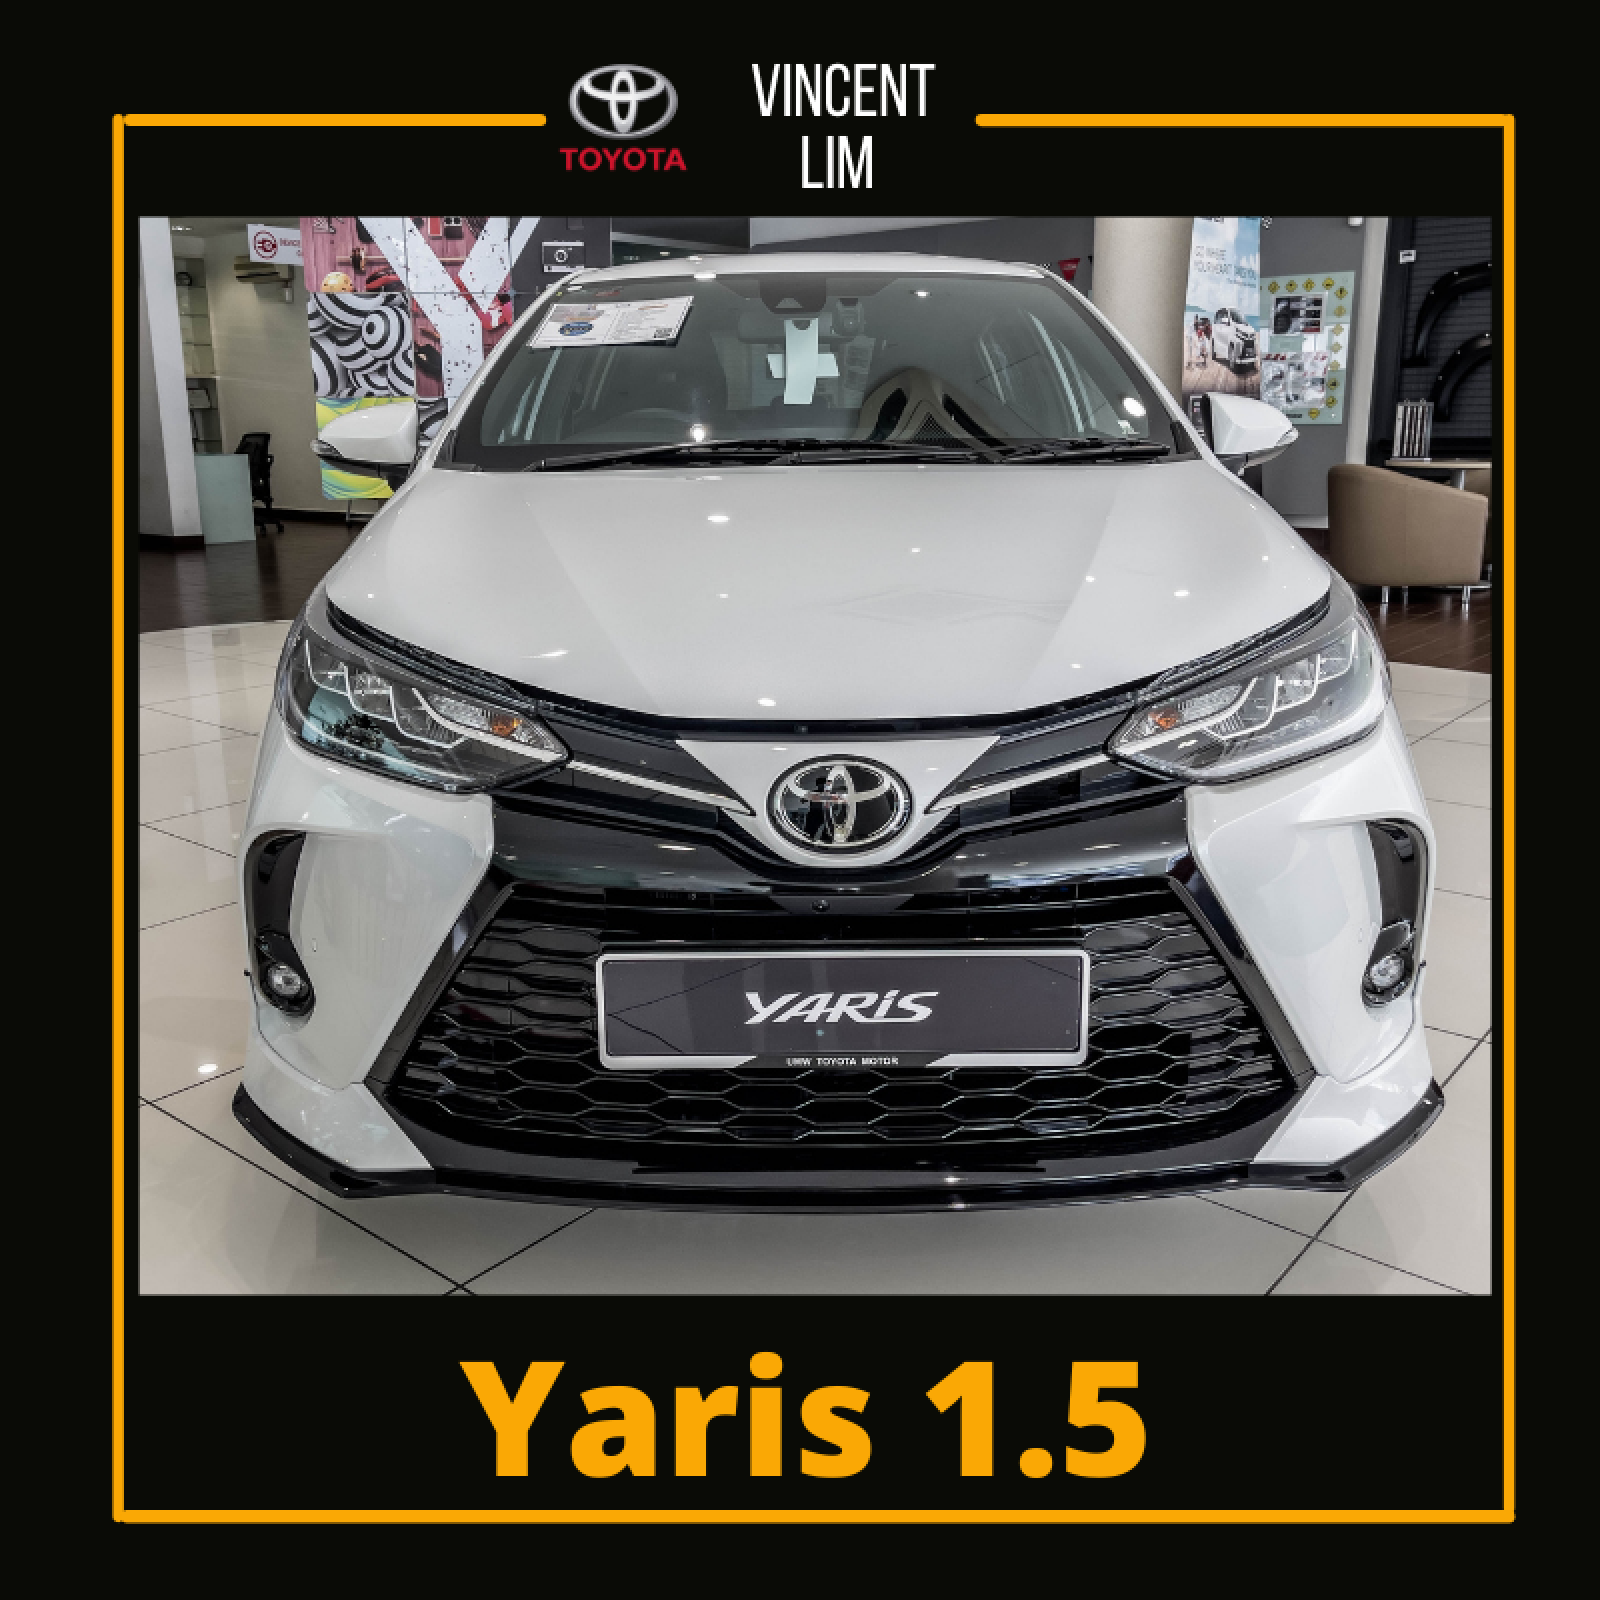 2021 Toyota Yaris Yaris-1.5G AT (2021)